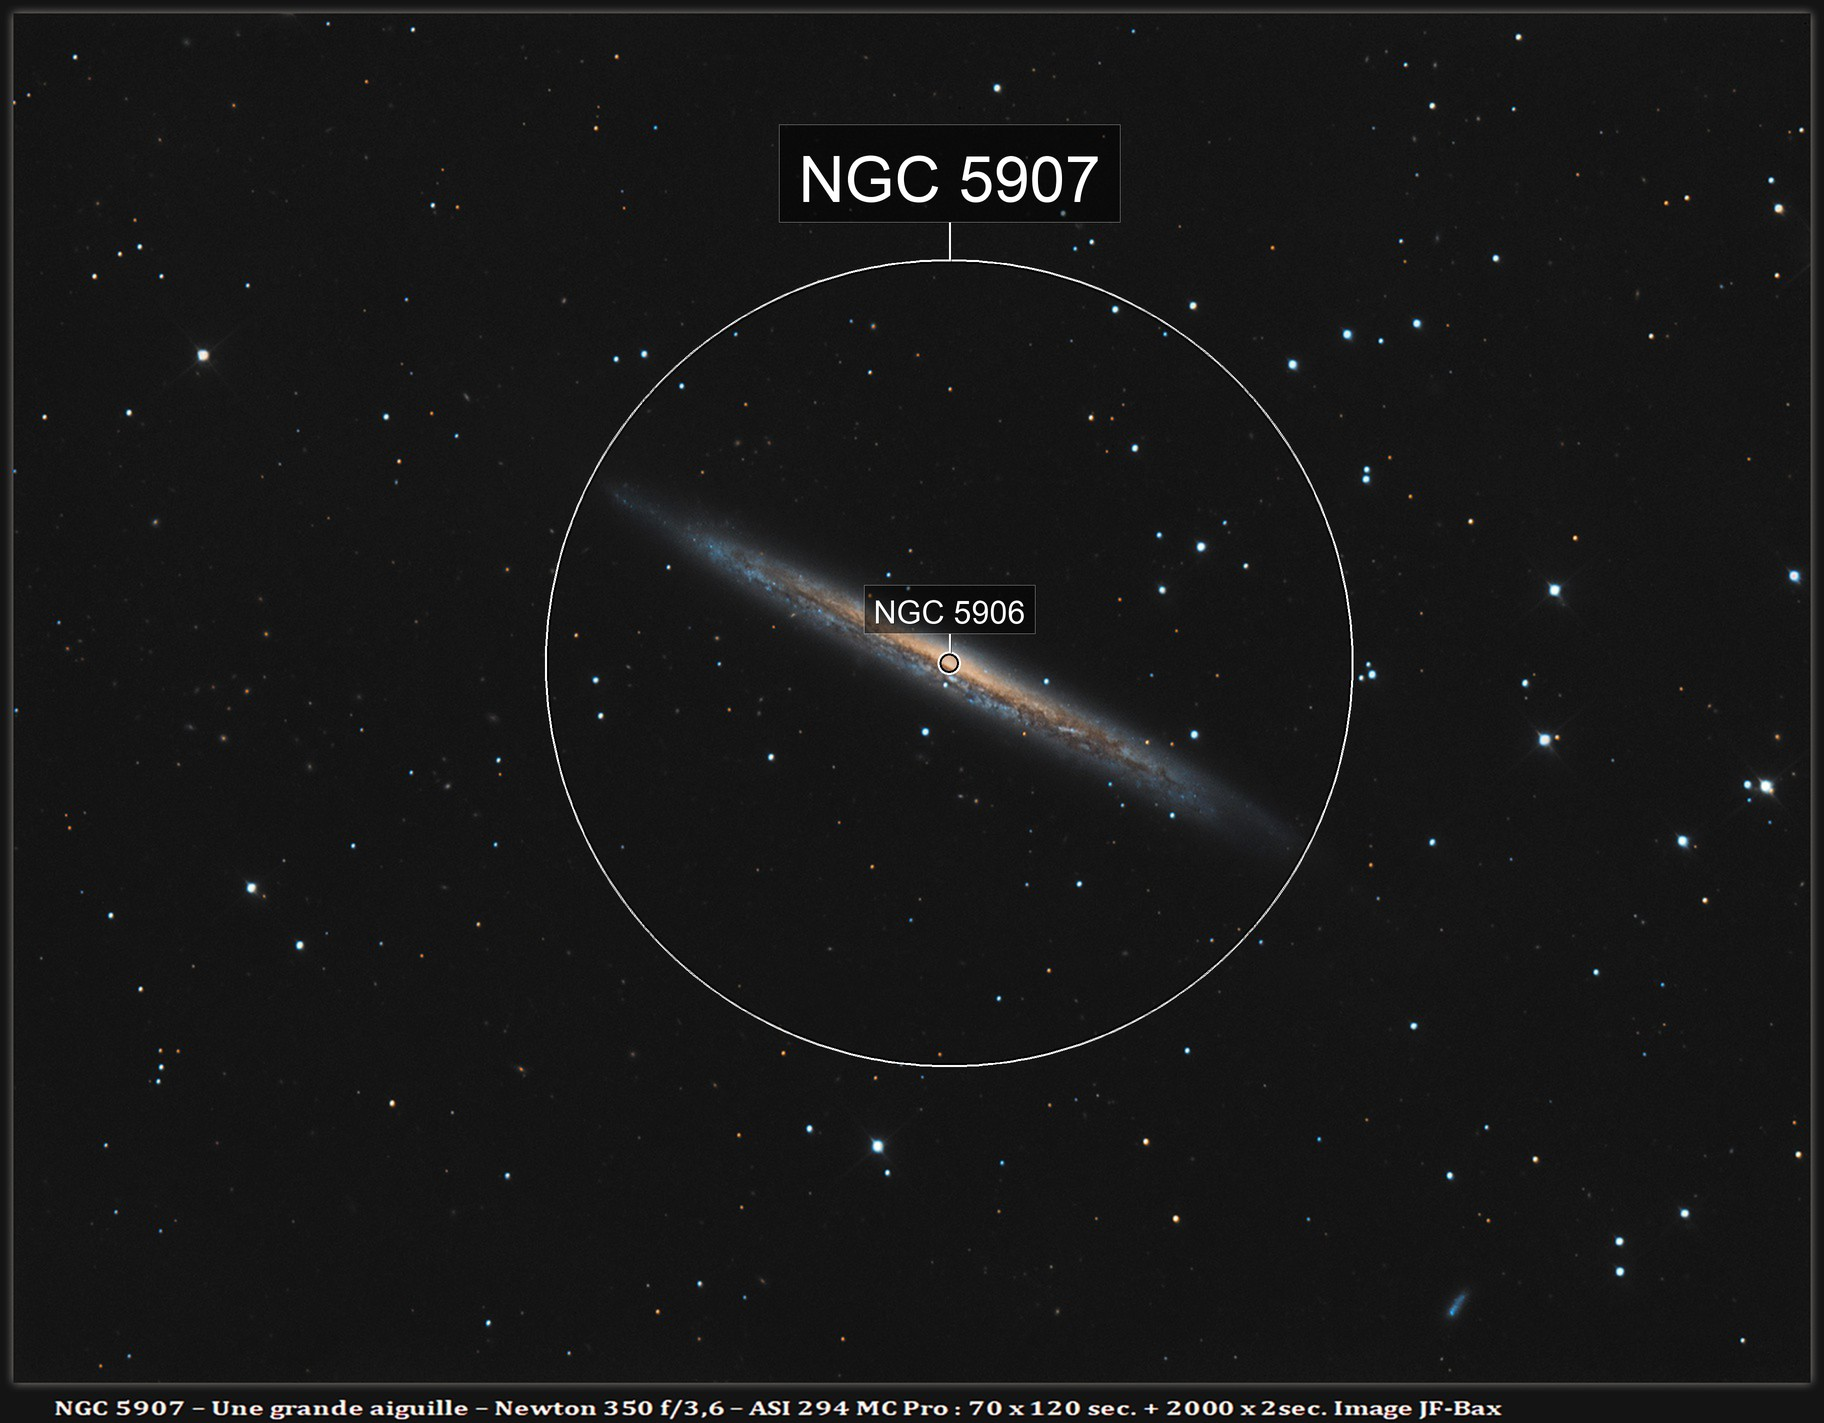 NGC 5907 reprocessed from scratch